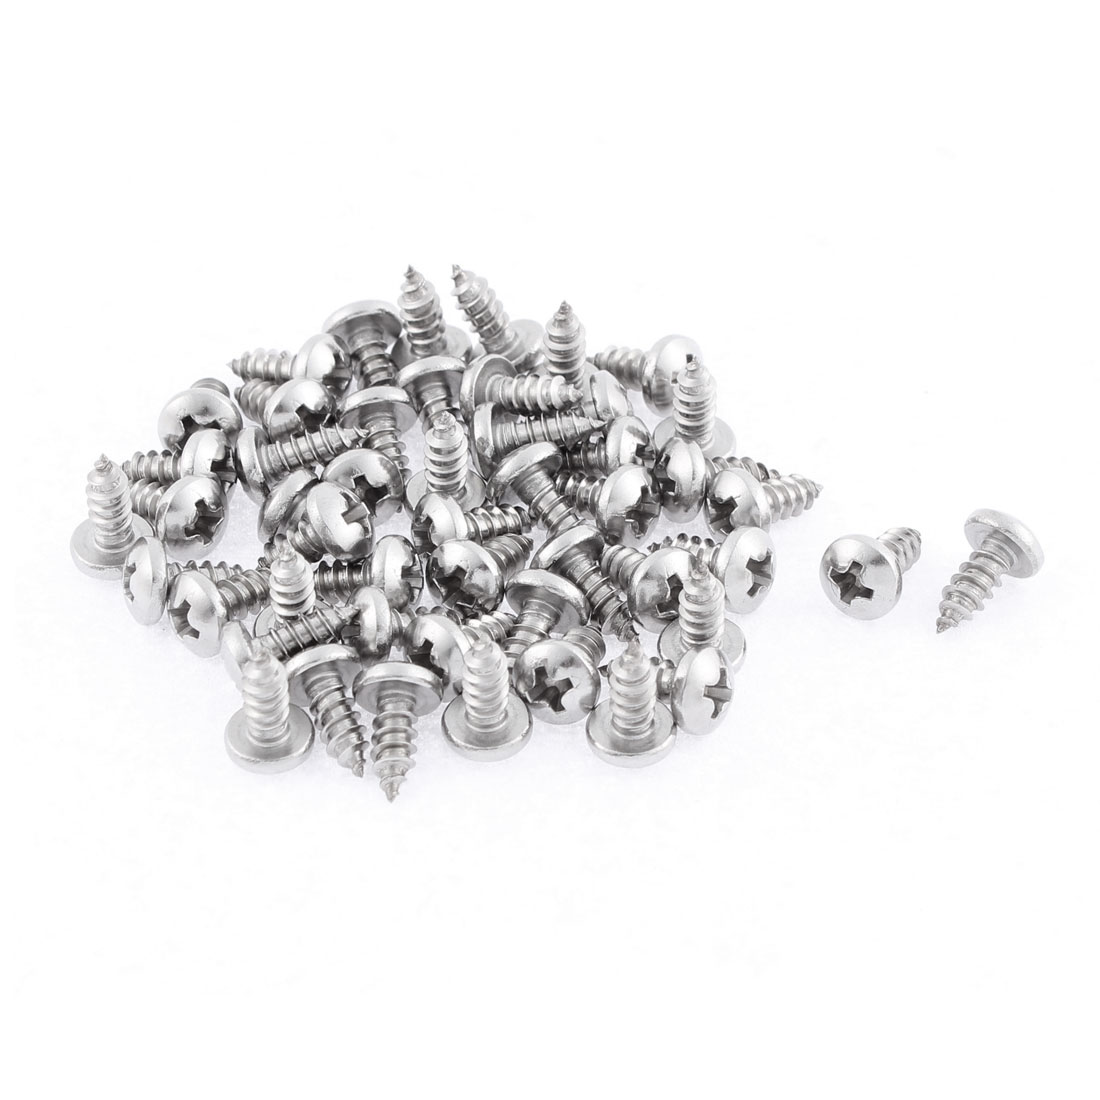 50 Pcs 3.9mmx9.5mm Stainless Steel Phillips Round Head Sheet Self Tapping Screws